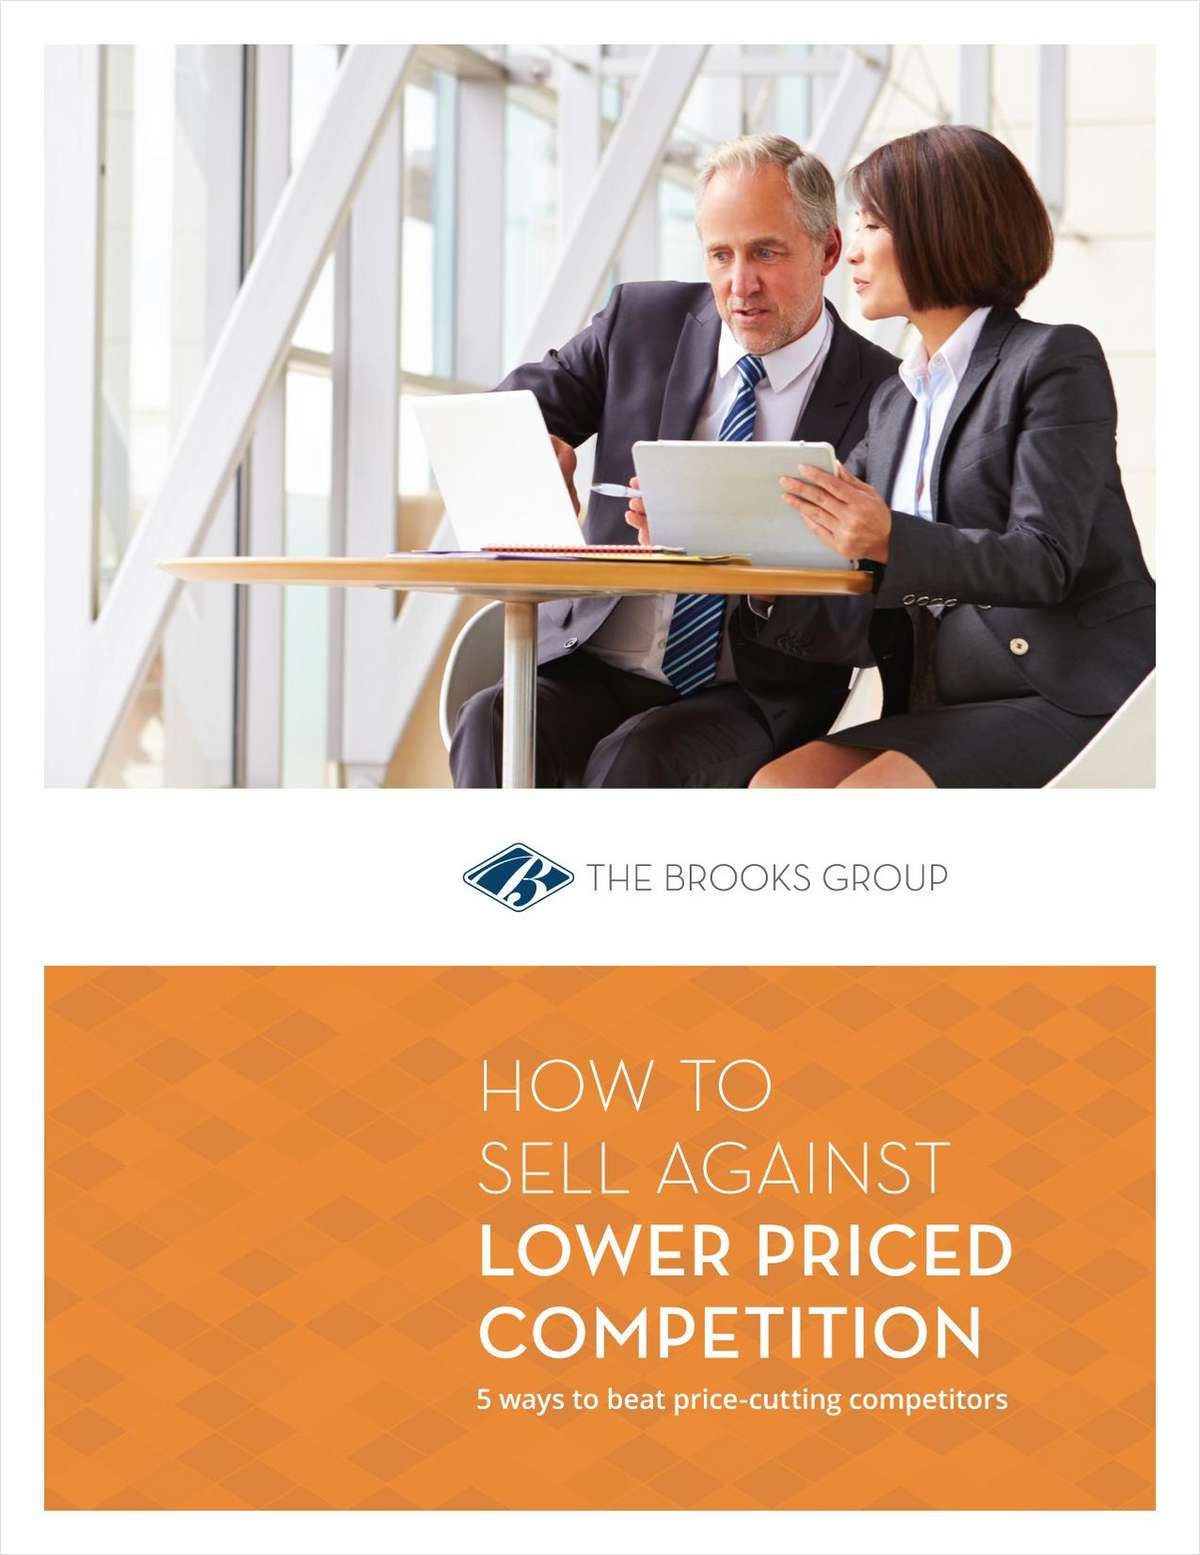 How to Sell Against Lower Priced Competition: 5 Ways to Beat Price-Cutting Competitors